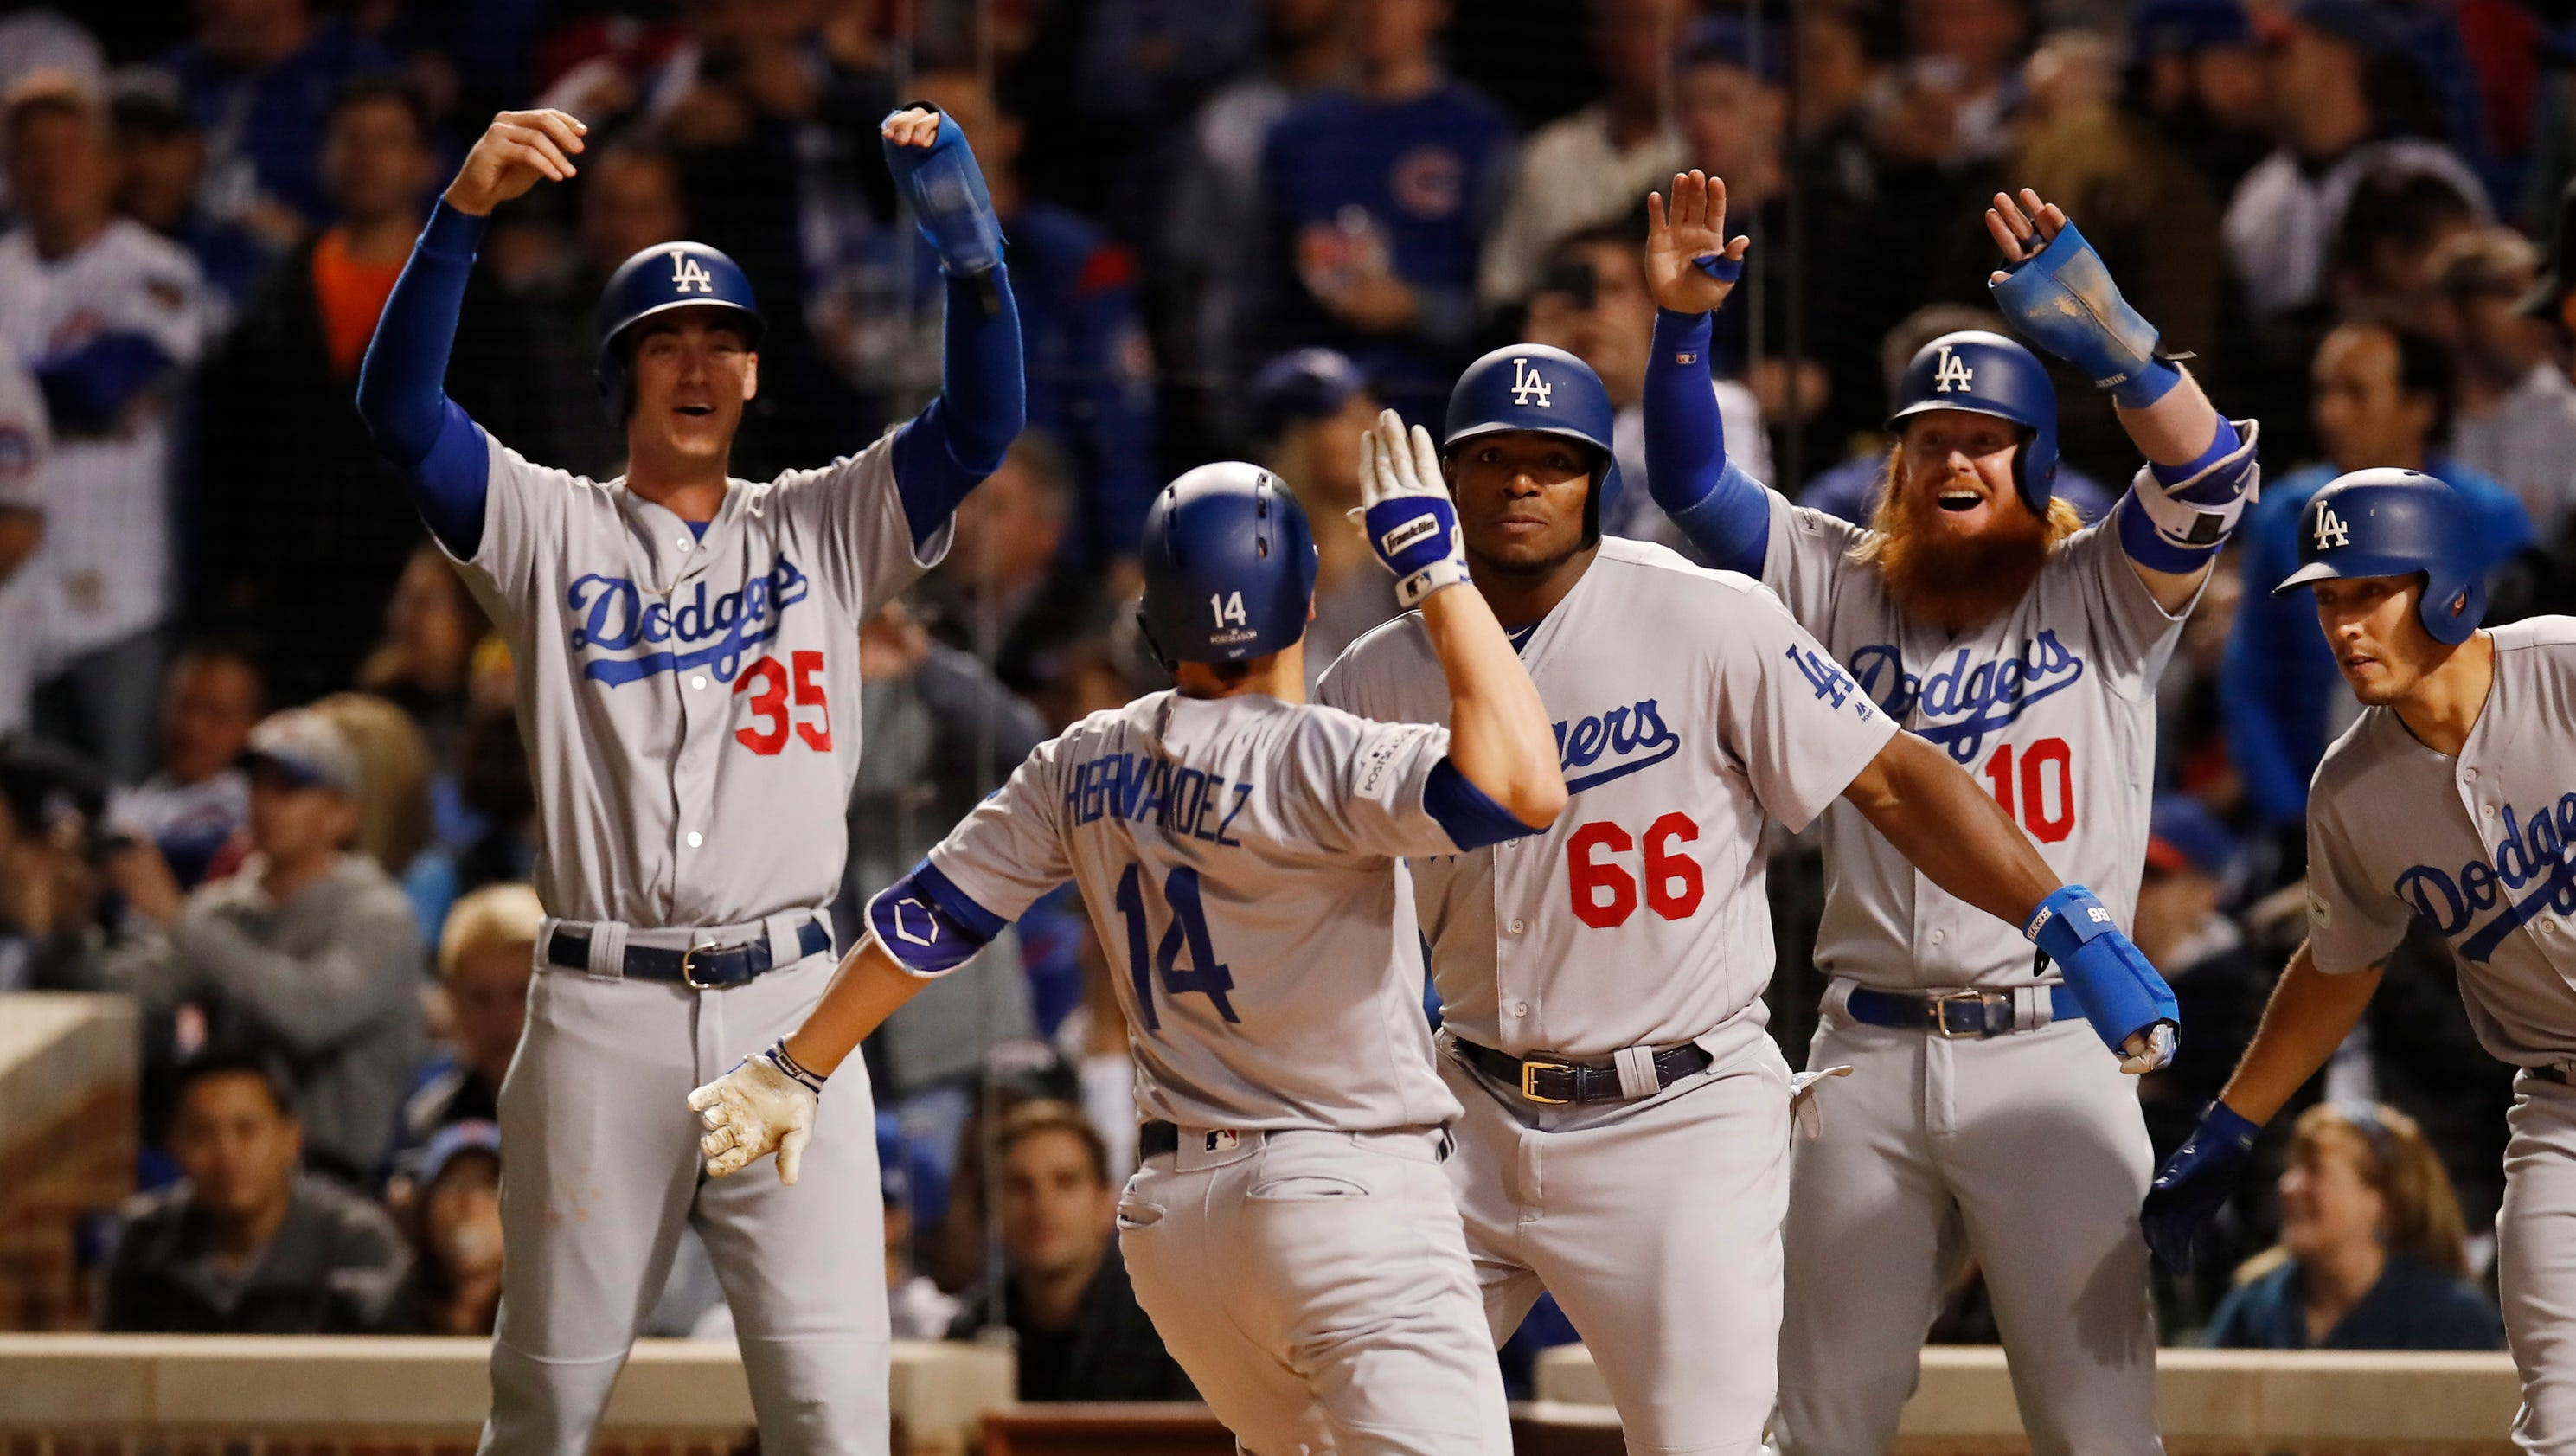 Dodgers rout defending champion Cubs to earn first trip to World Series since 1988